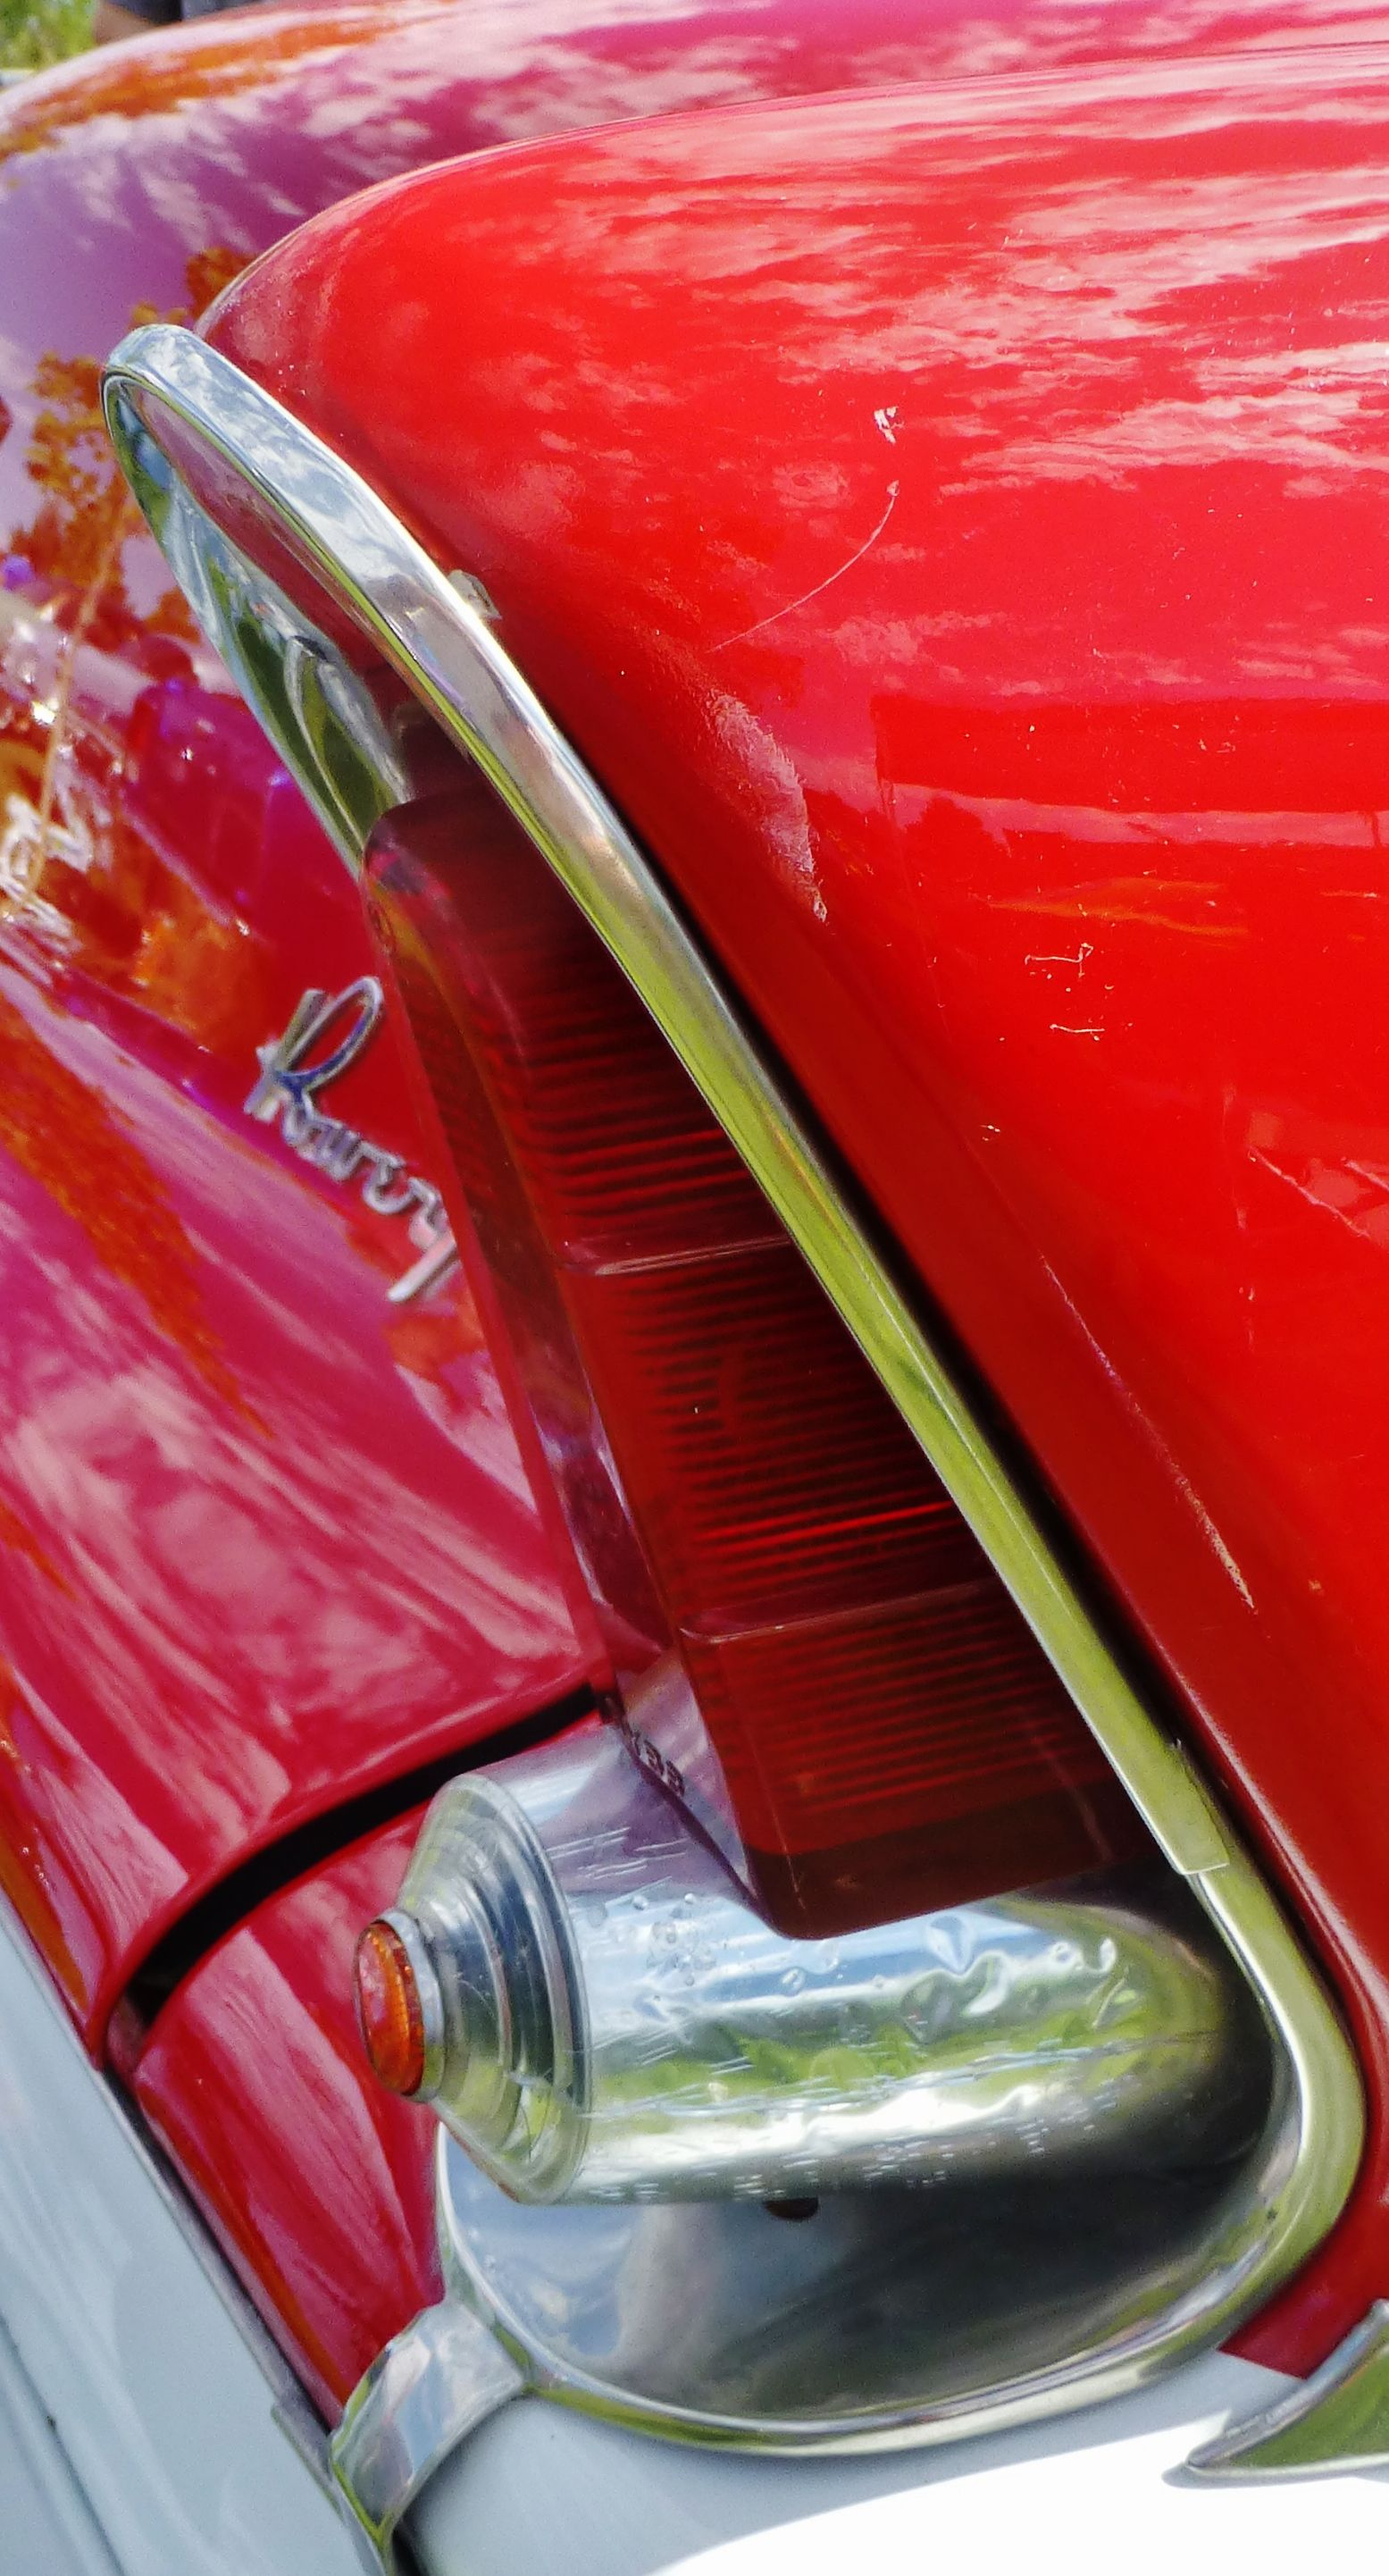 1955 plymouth belvedere tail fin photography by david e nelson rh pinterest com